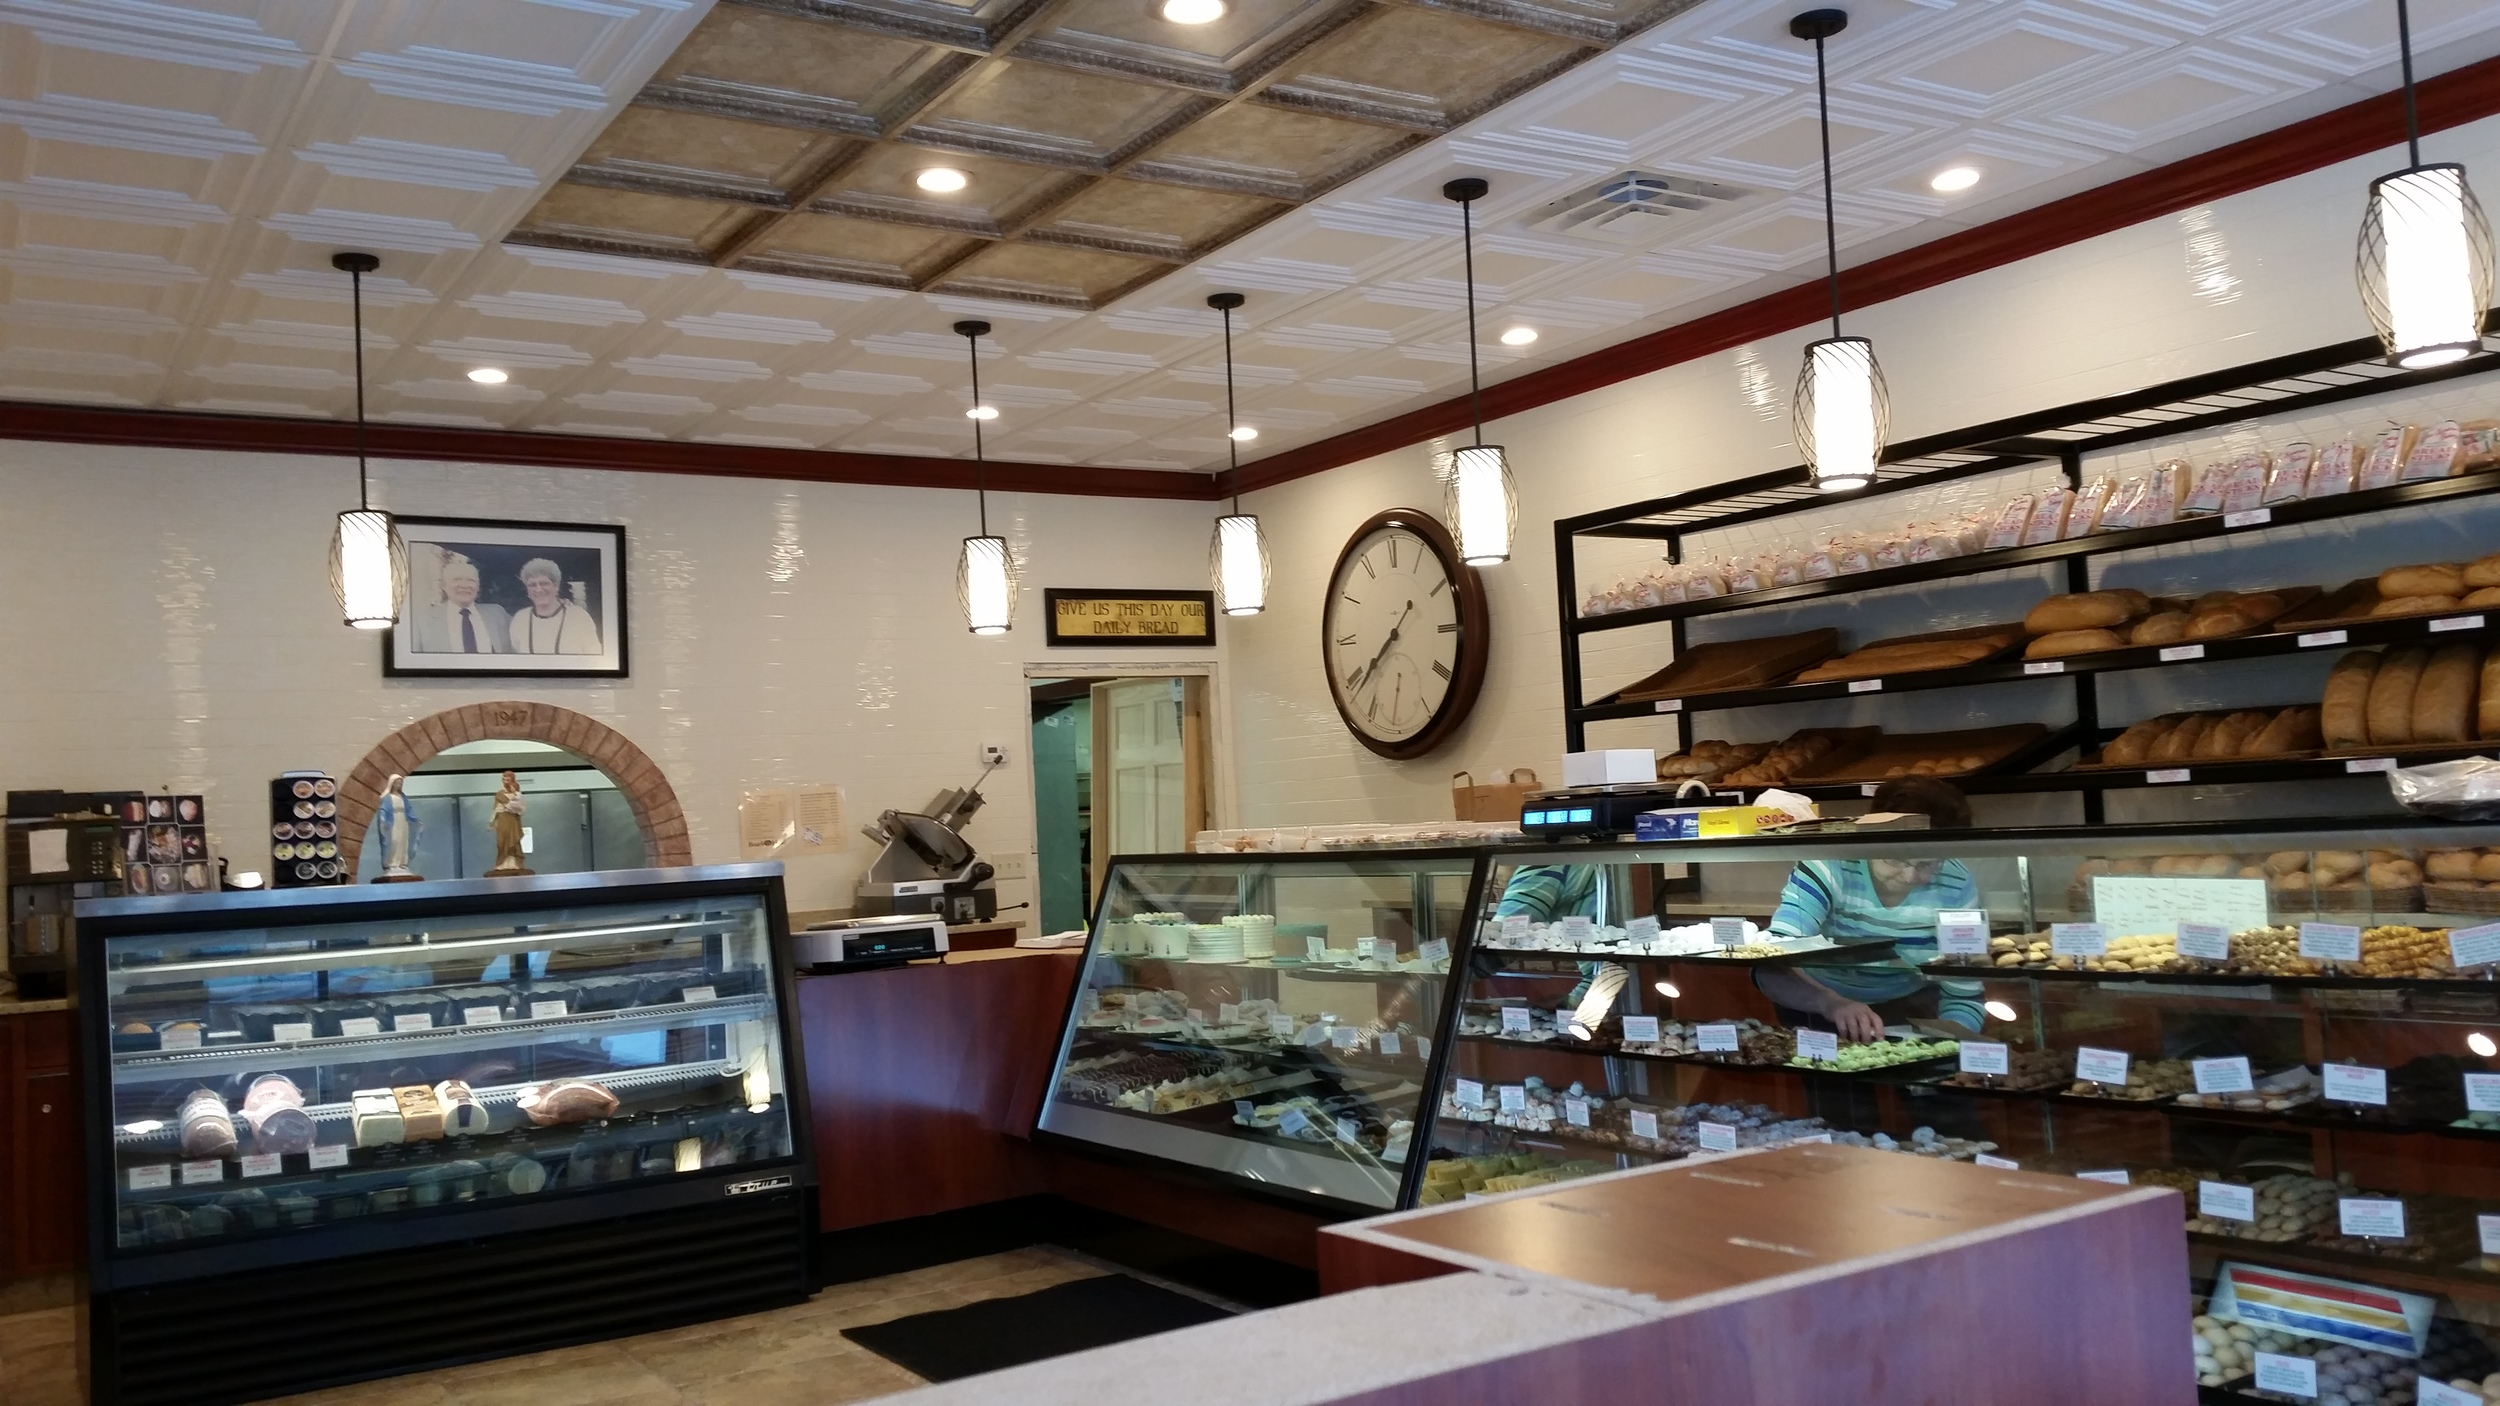 Remodeled in just one week, Peter Sciortino's Bakery continues to be one of Milwaukee's premier historic bakeries since 1947.